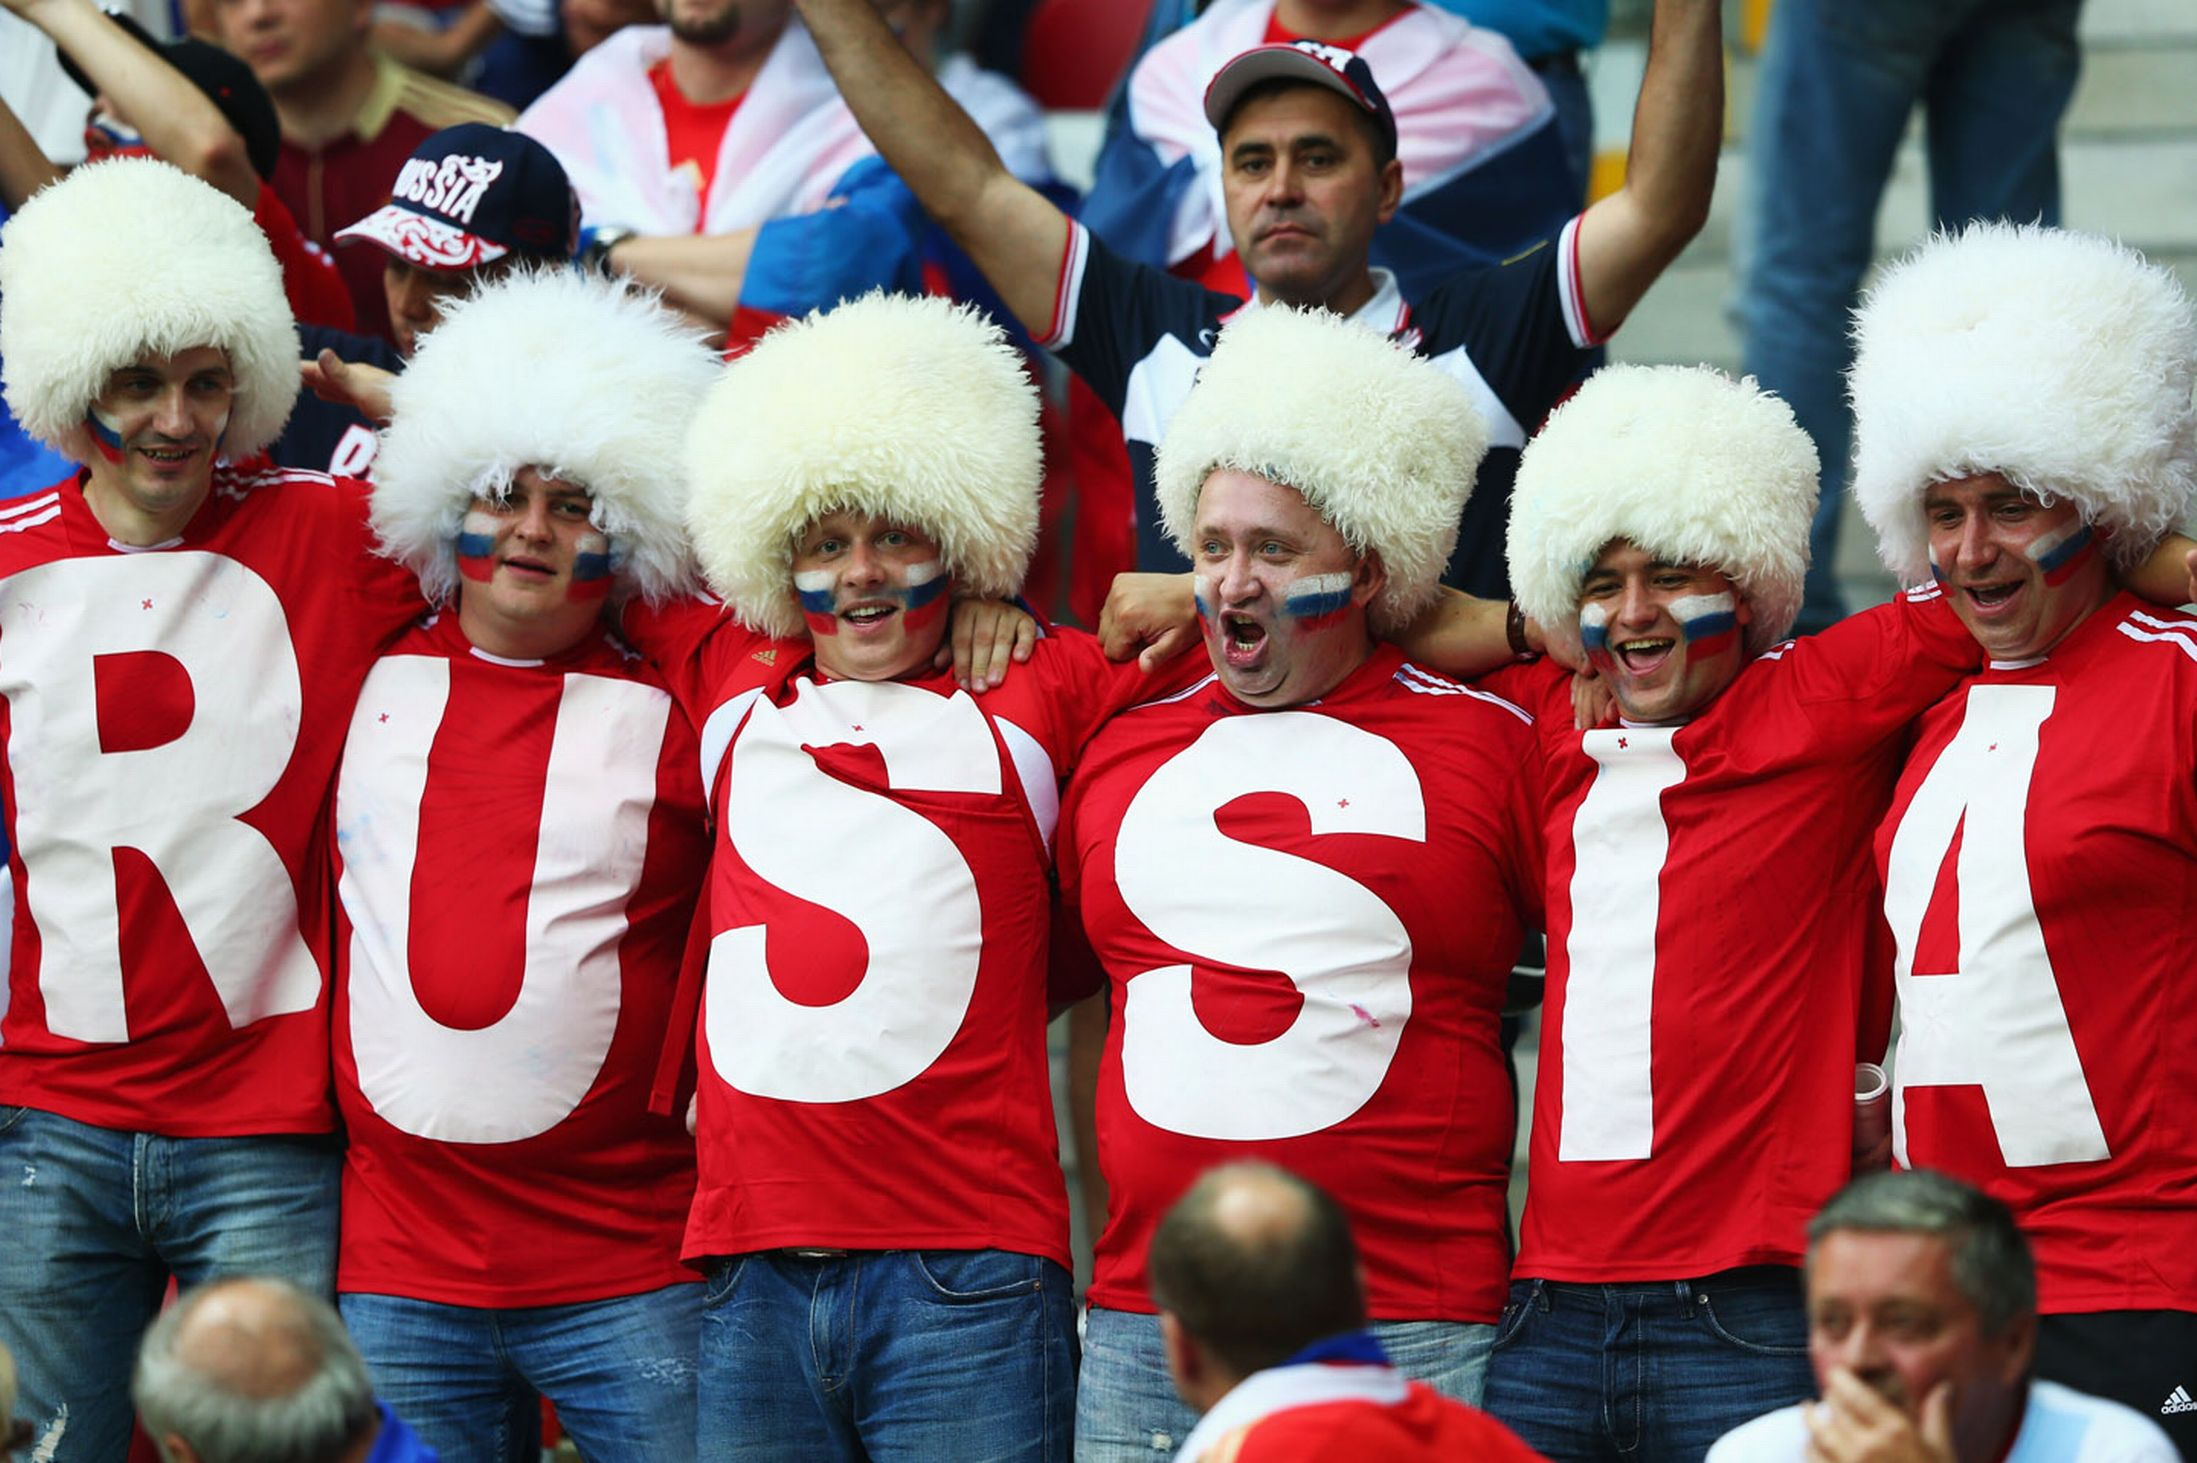 Russia Fans ready to cheer their nation in soccer world cup 2018